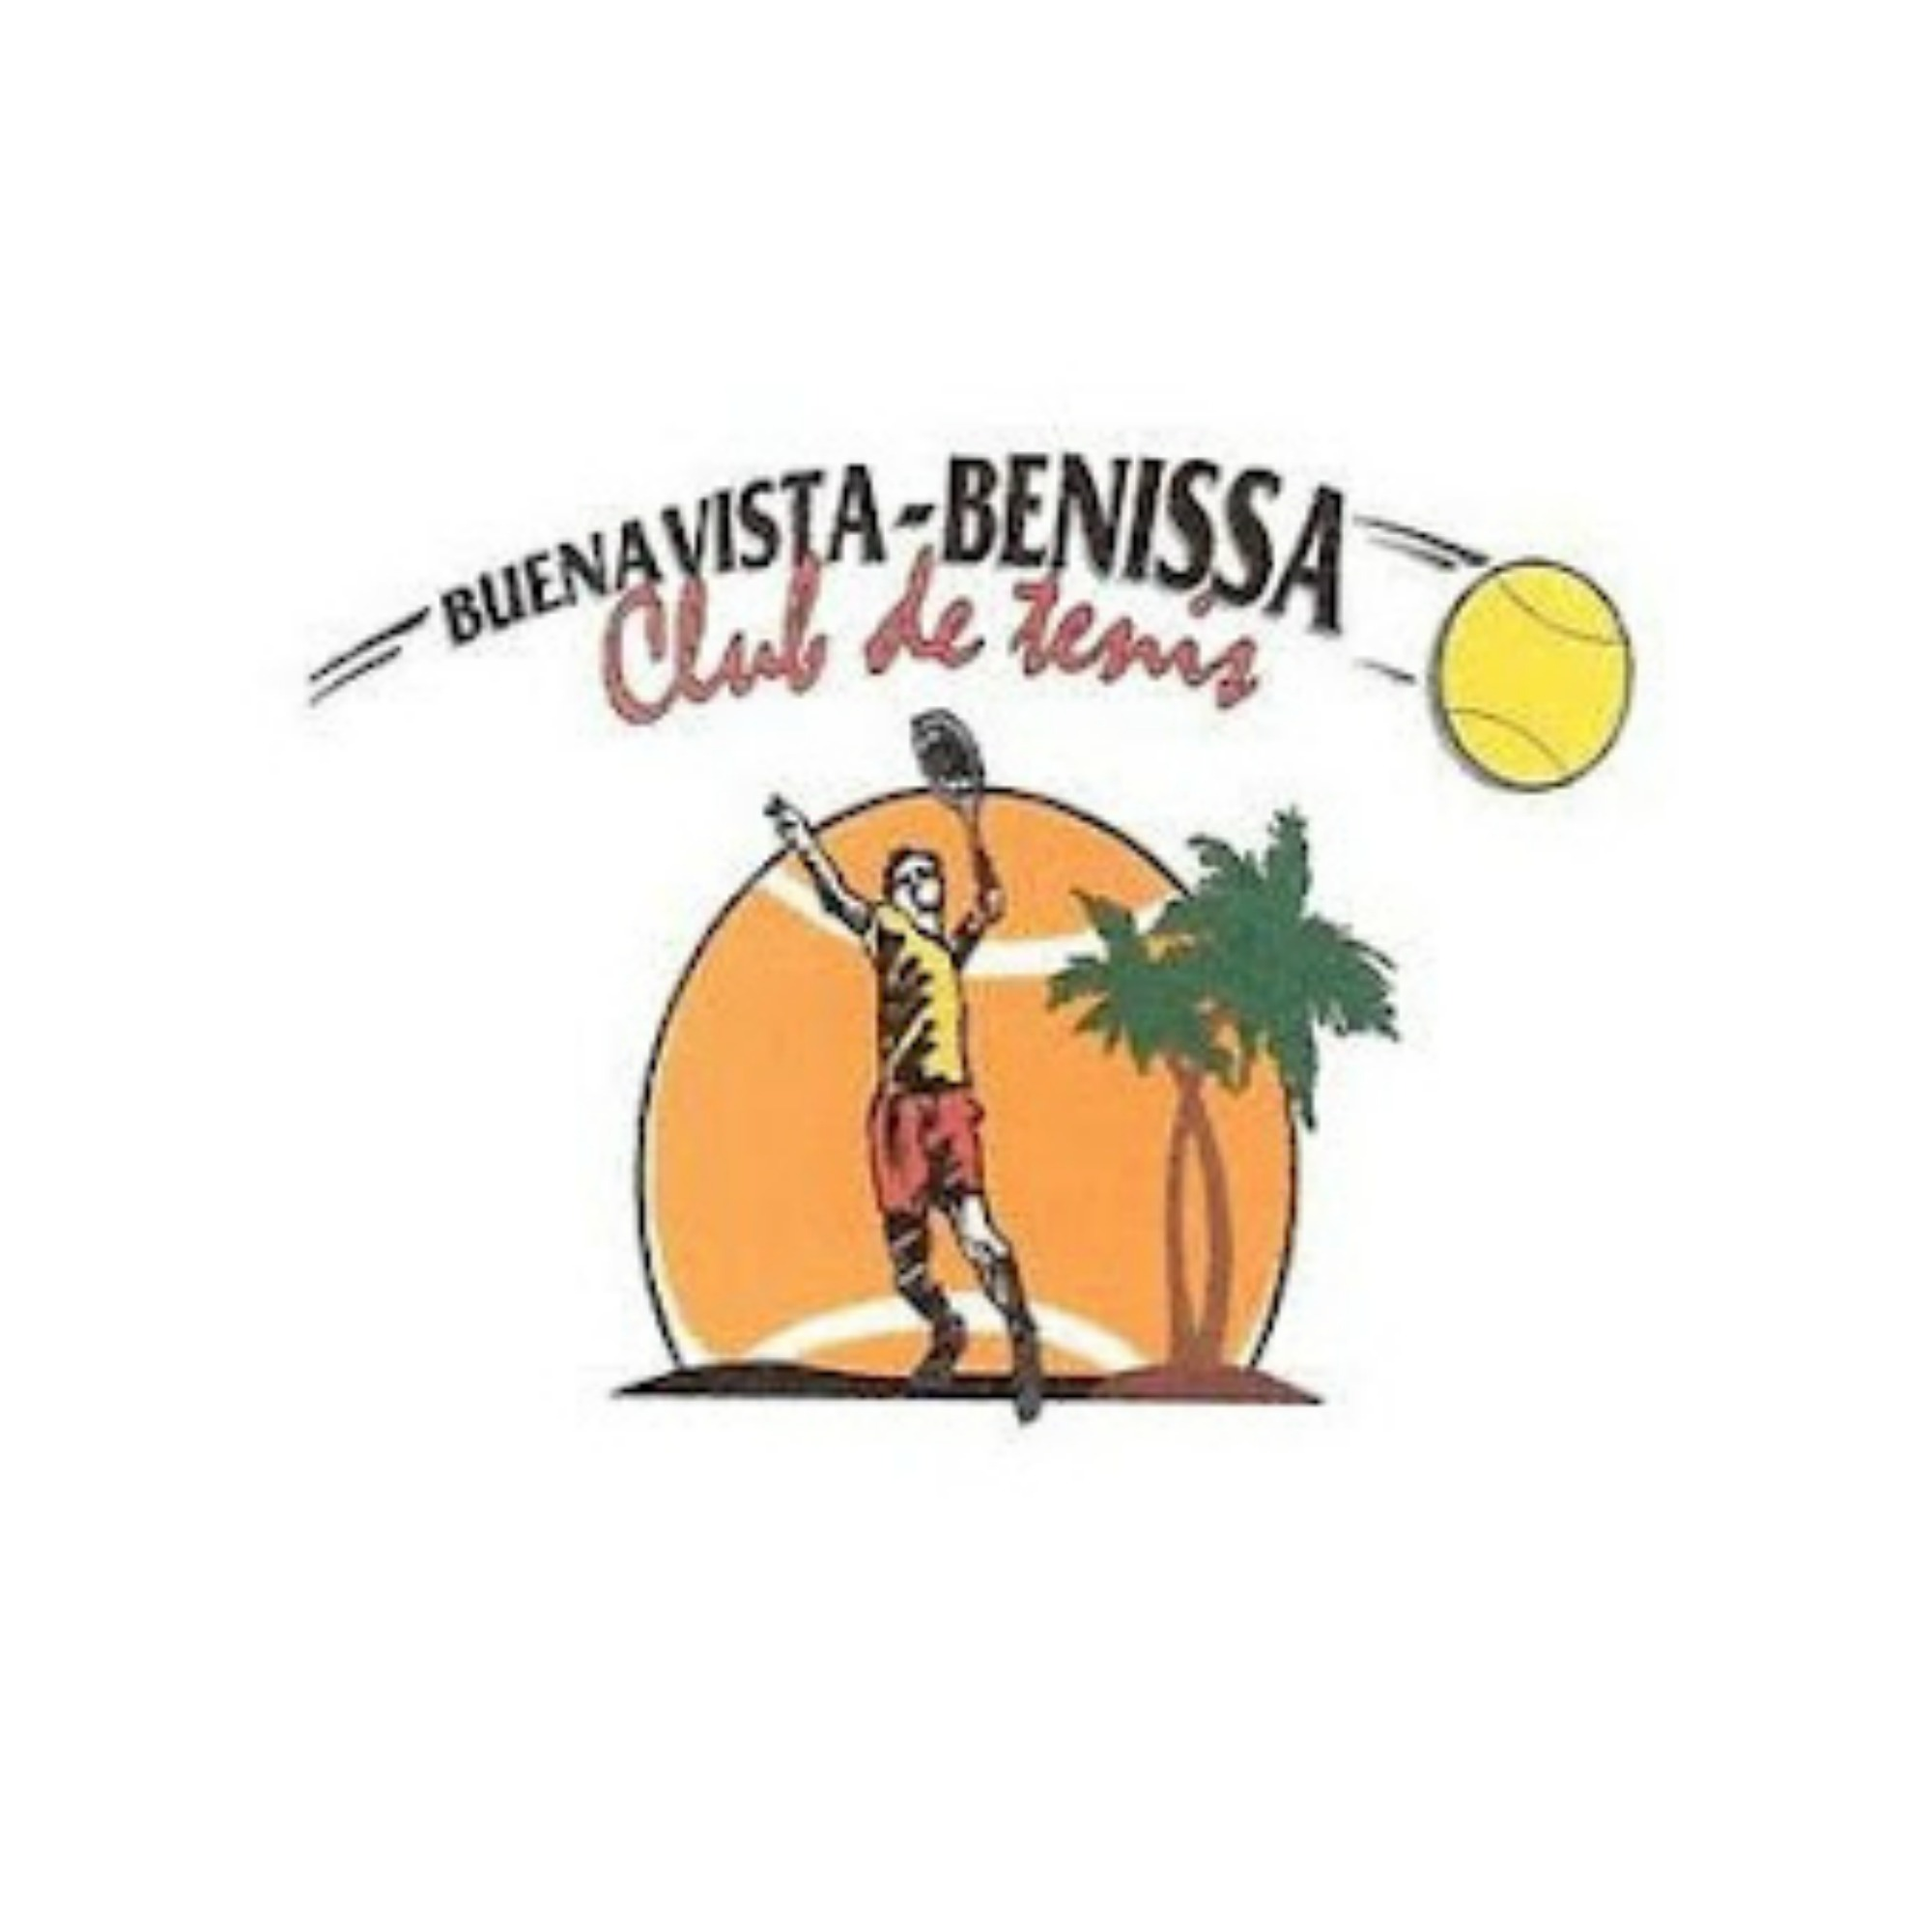 Club de Tennis Buenavista